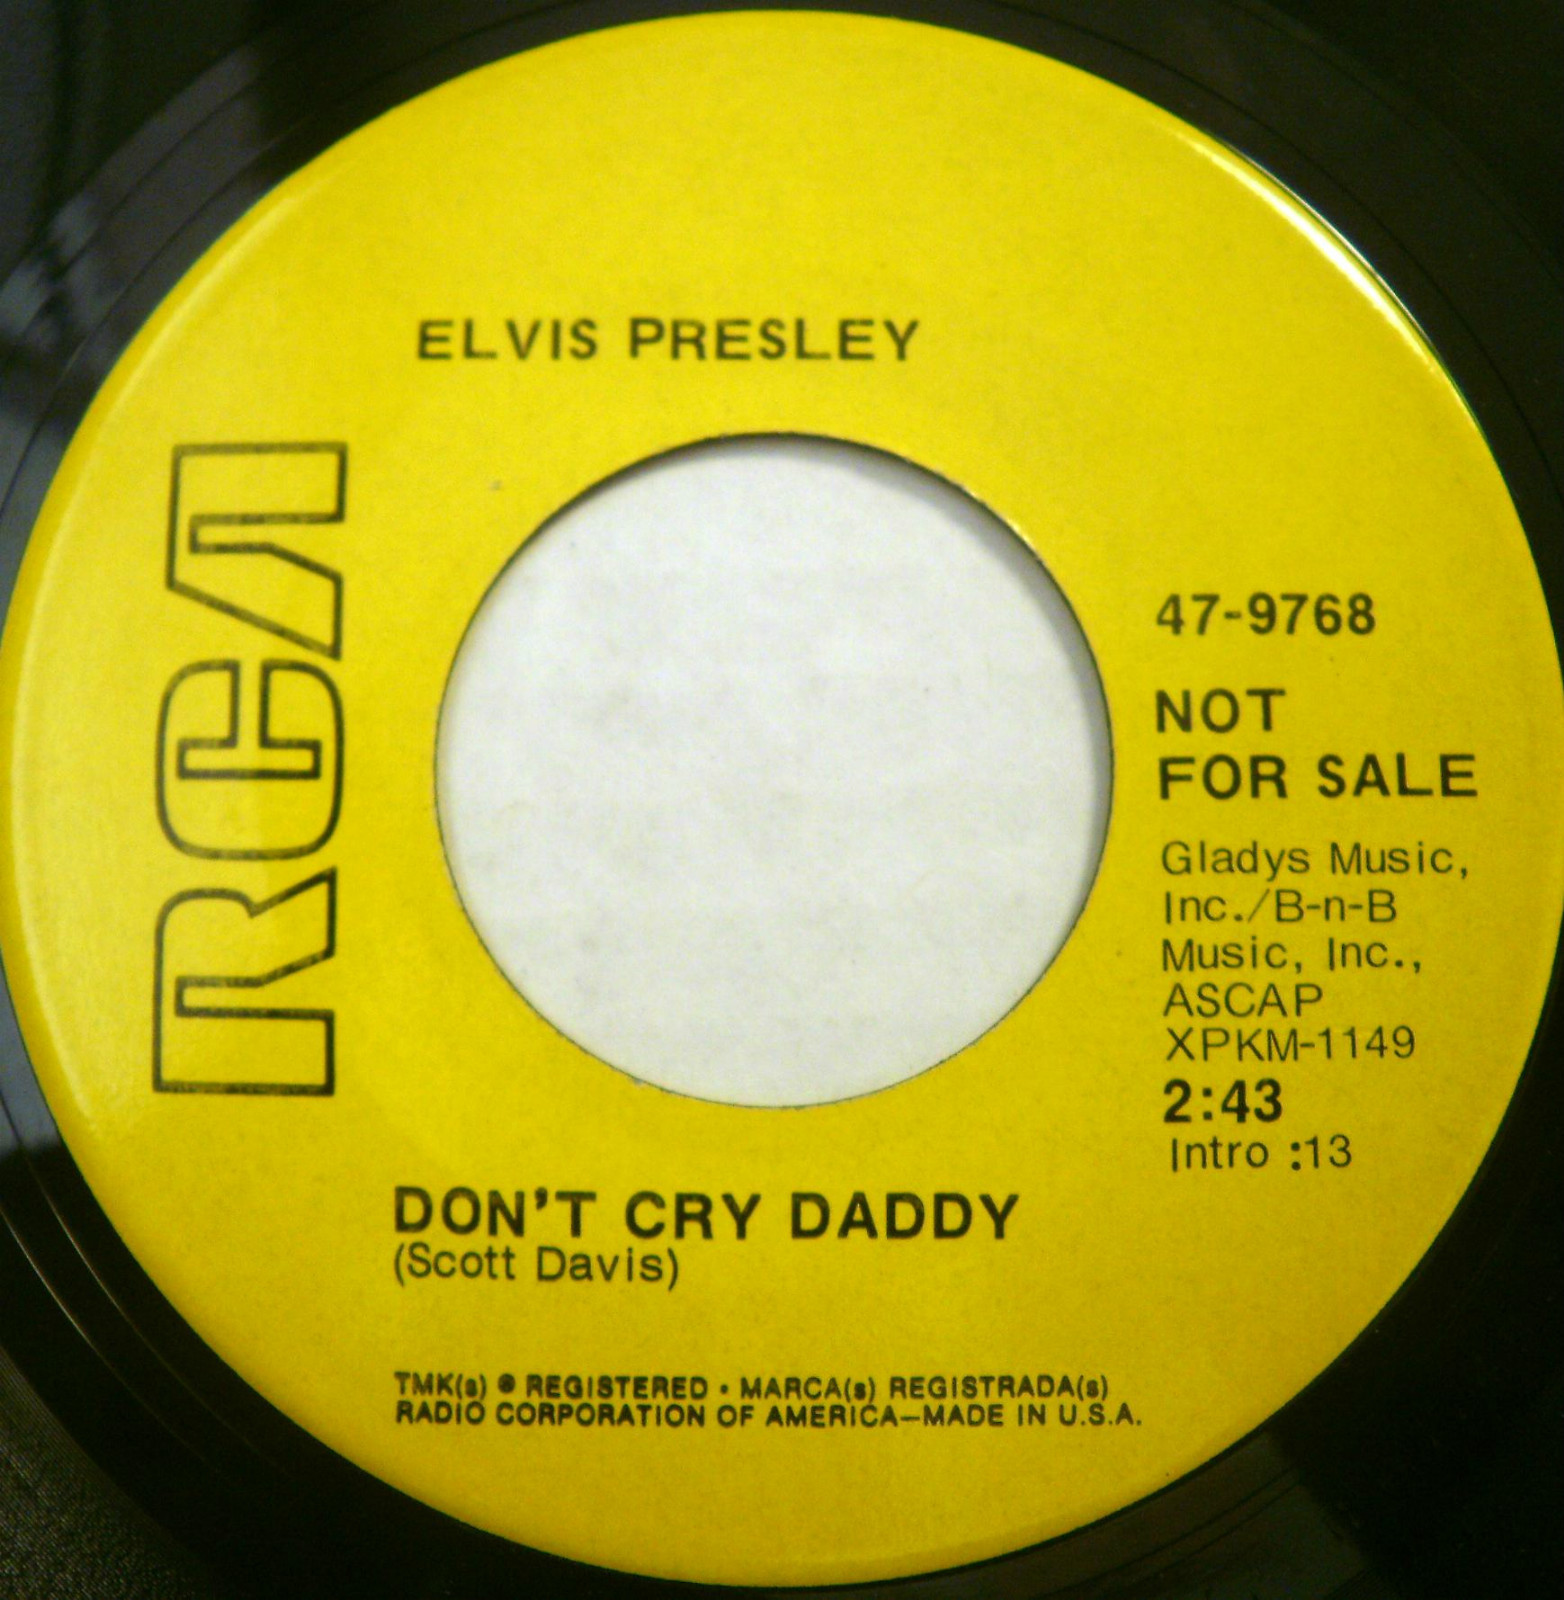 Don't Cry Daddy / Rubberneckin' 47-9768byjow2